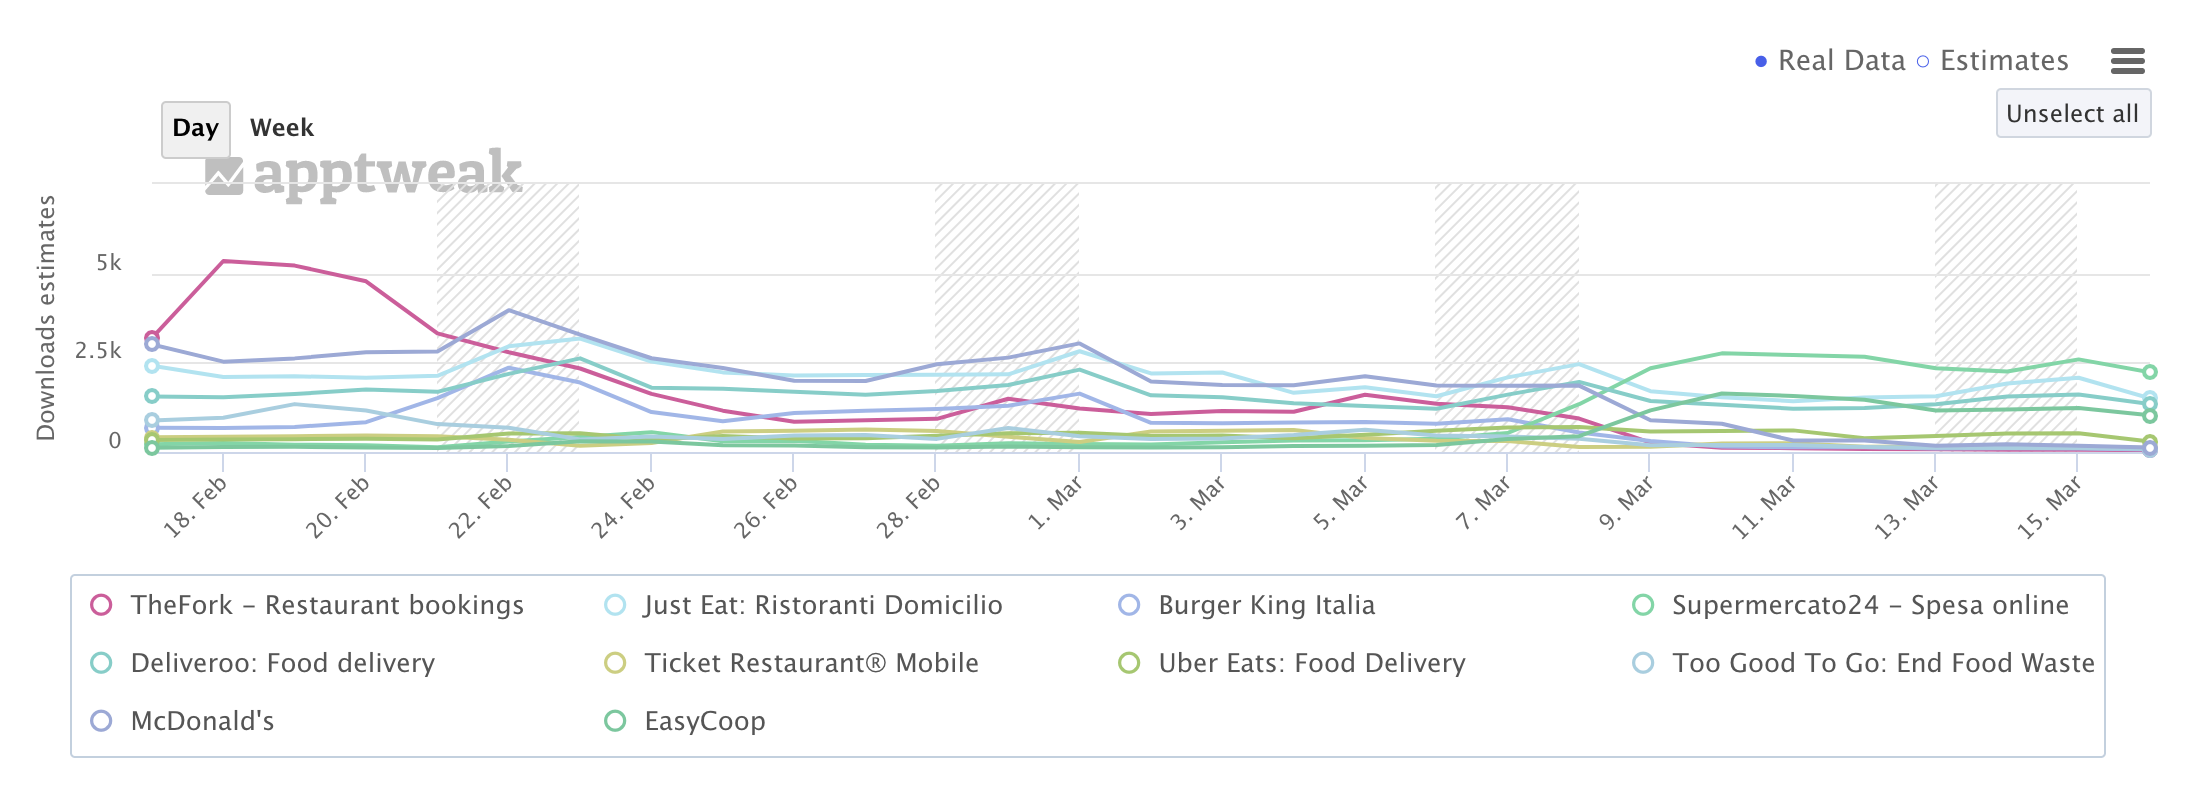 Impact of Italy lockdown on Food & Drink apps